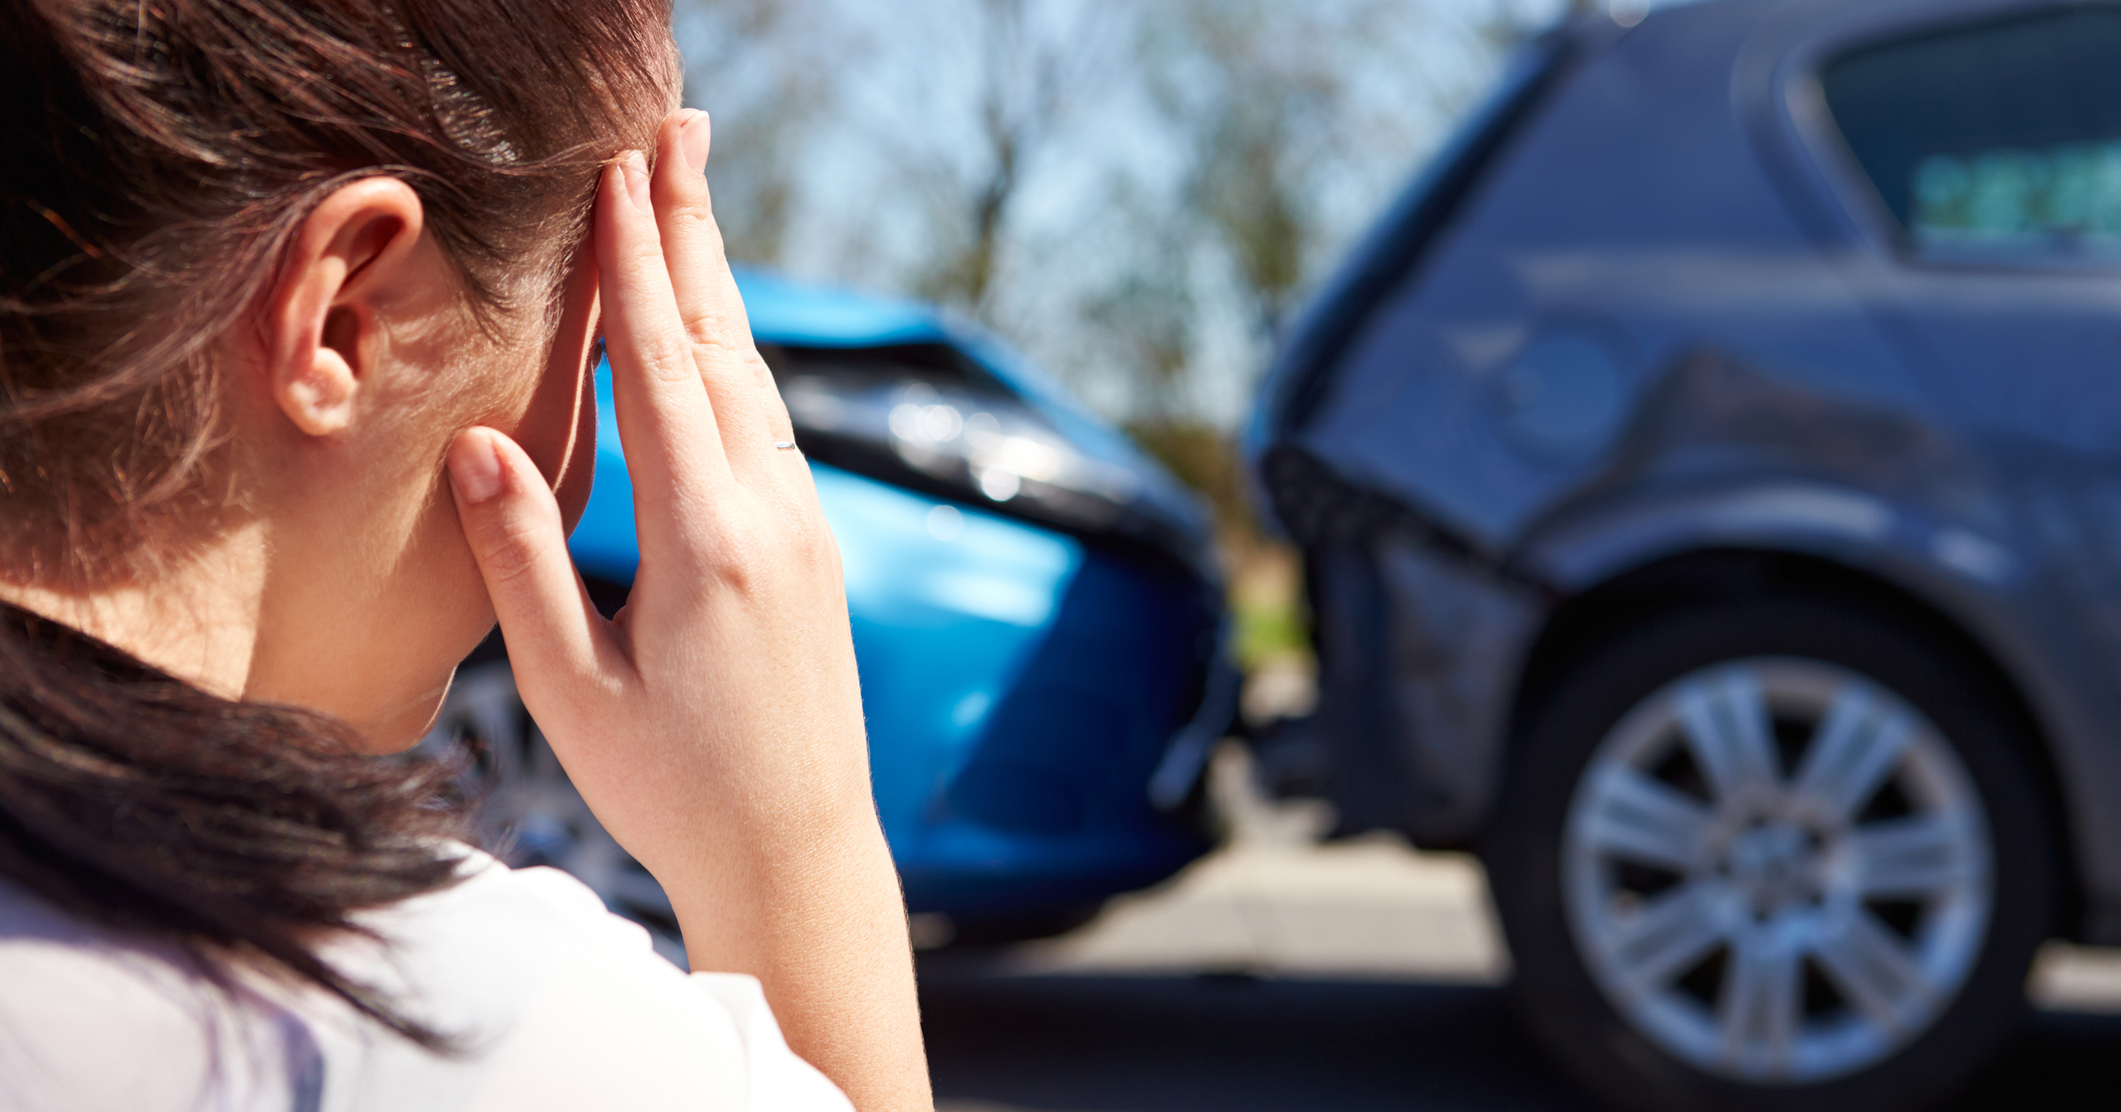 Importance of physical therapy - Importance Of Physical Therapy After A Car Accident